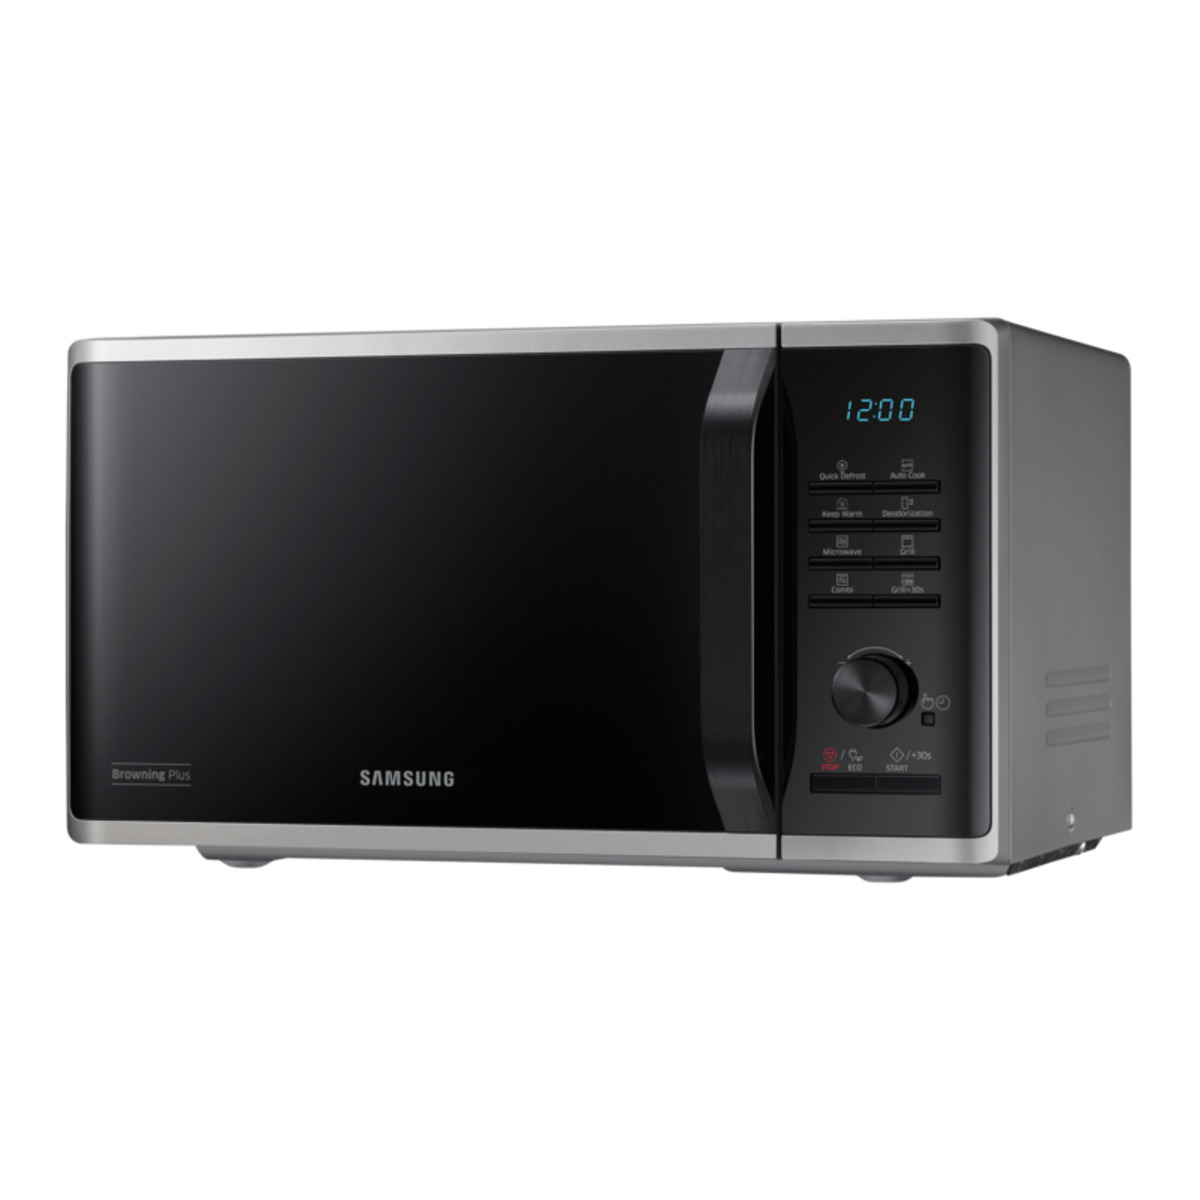 Samsung MG23K3515AS forno a microonde Superficie piana Microonde con grill 23 L